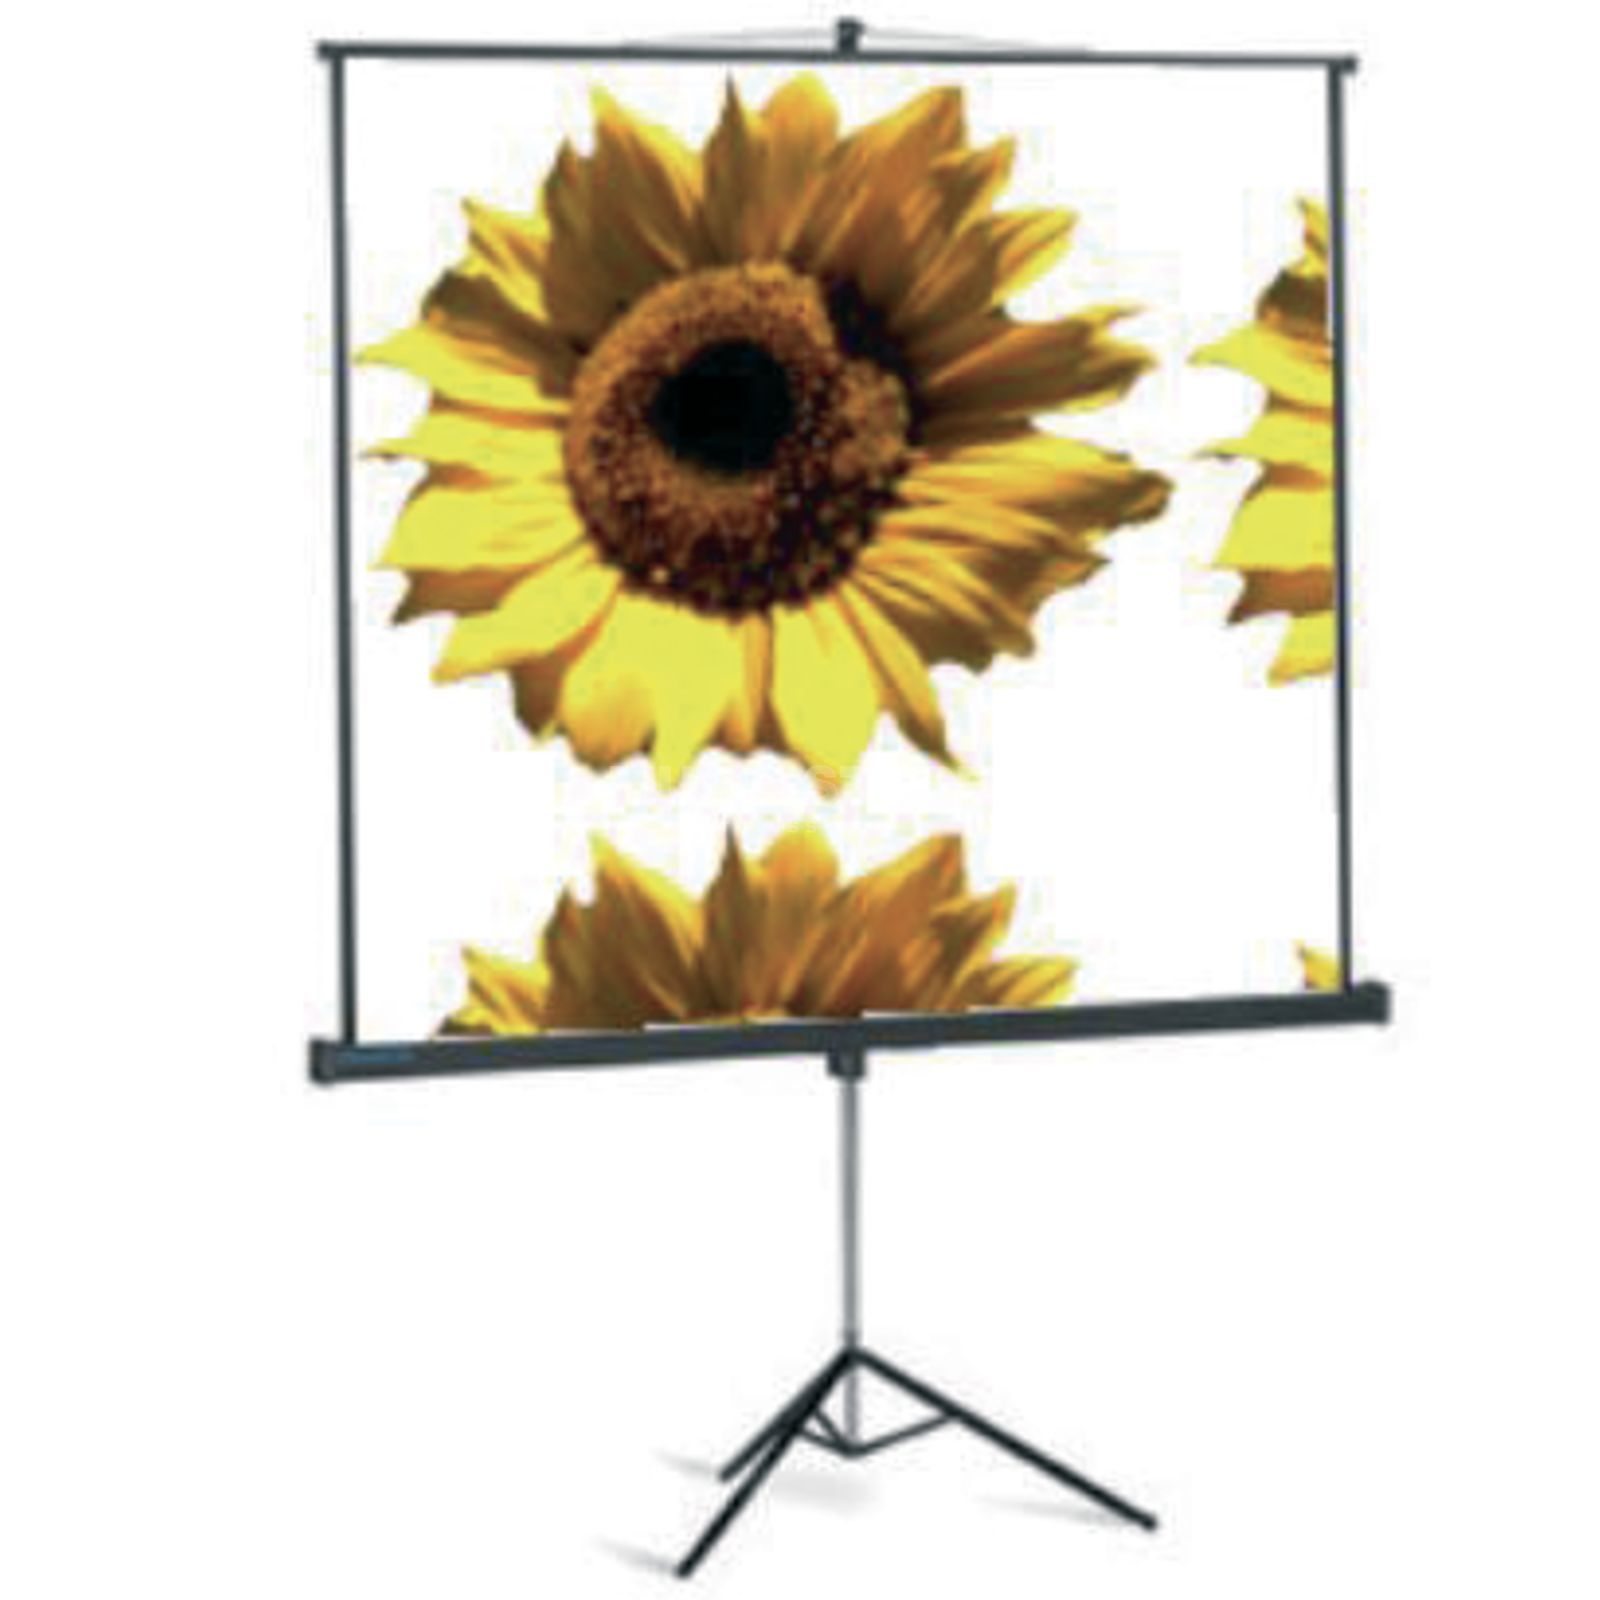 "lightmaXX Projection Screen on Tripod 200 x 150 cm 100"" / 4:3 Produktbillede"